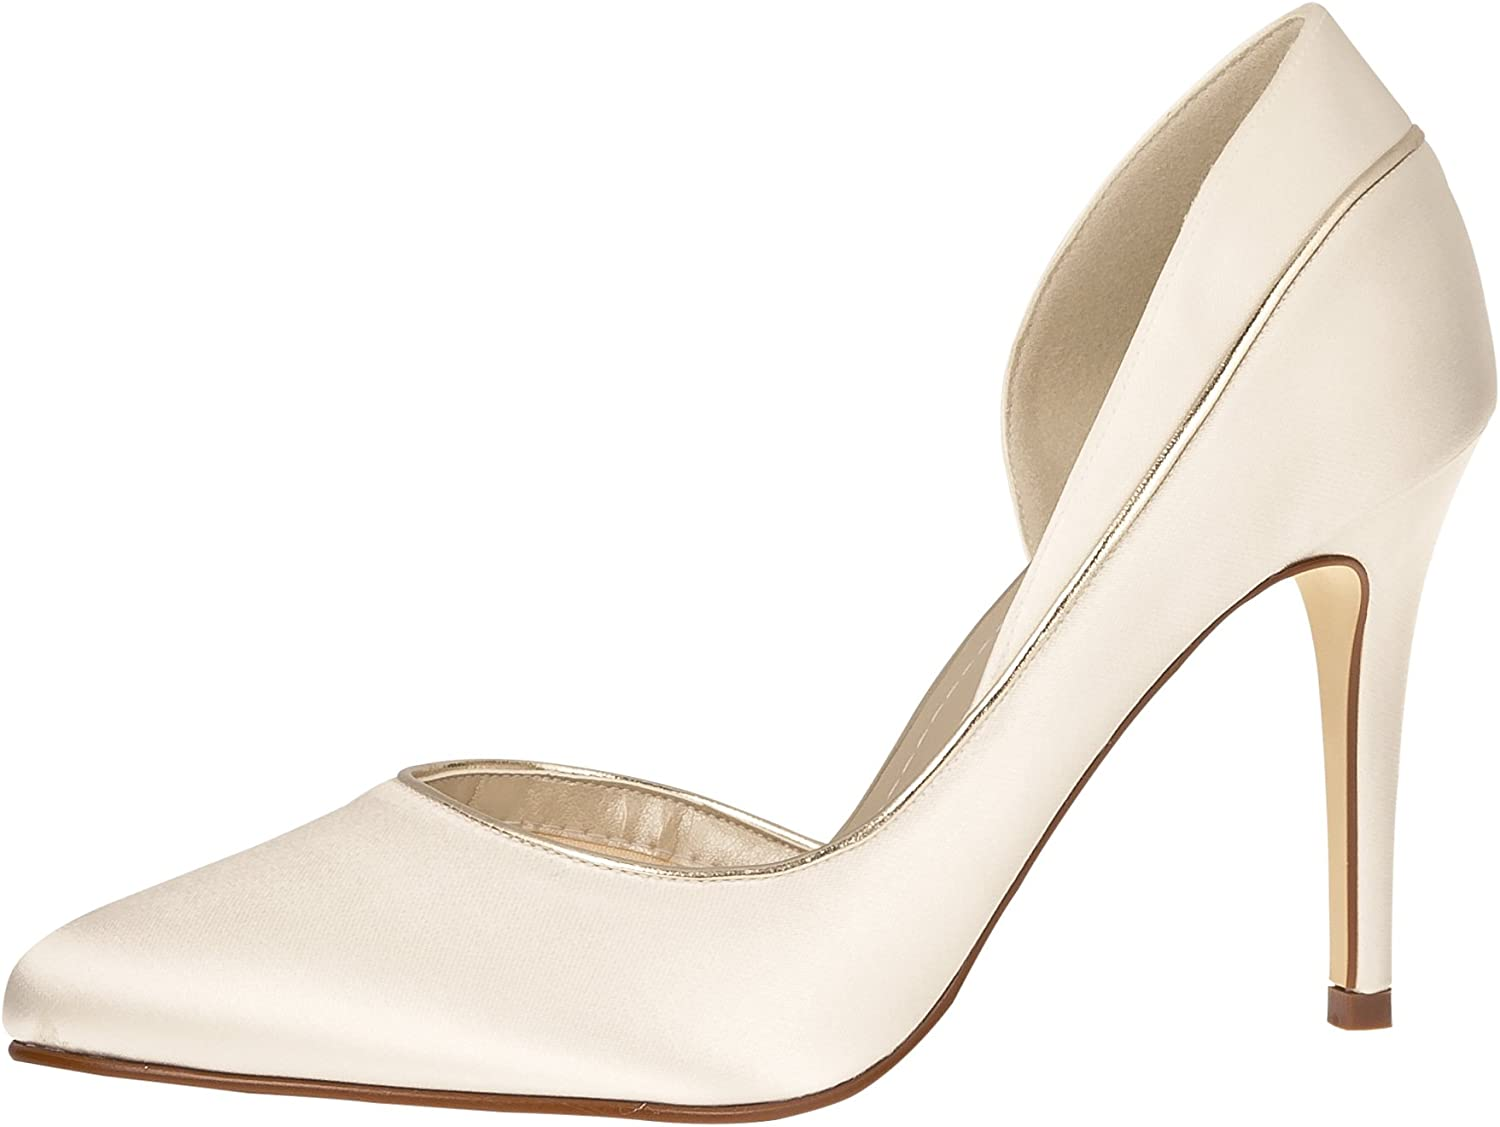 Rainbow Club Brautschuhe Joanne - Pumps Ivory Satin - High Heels Damen